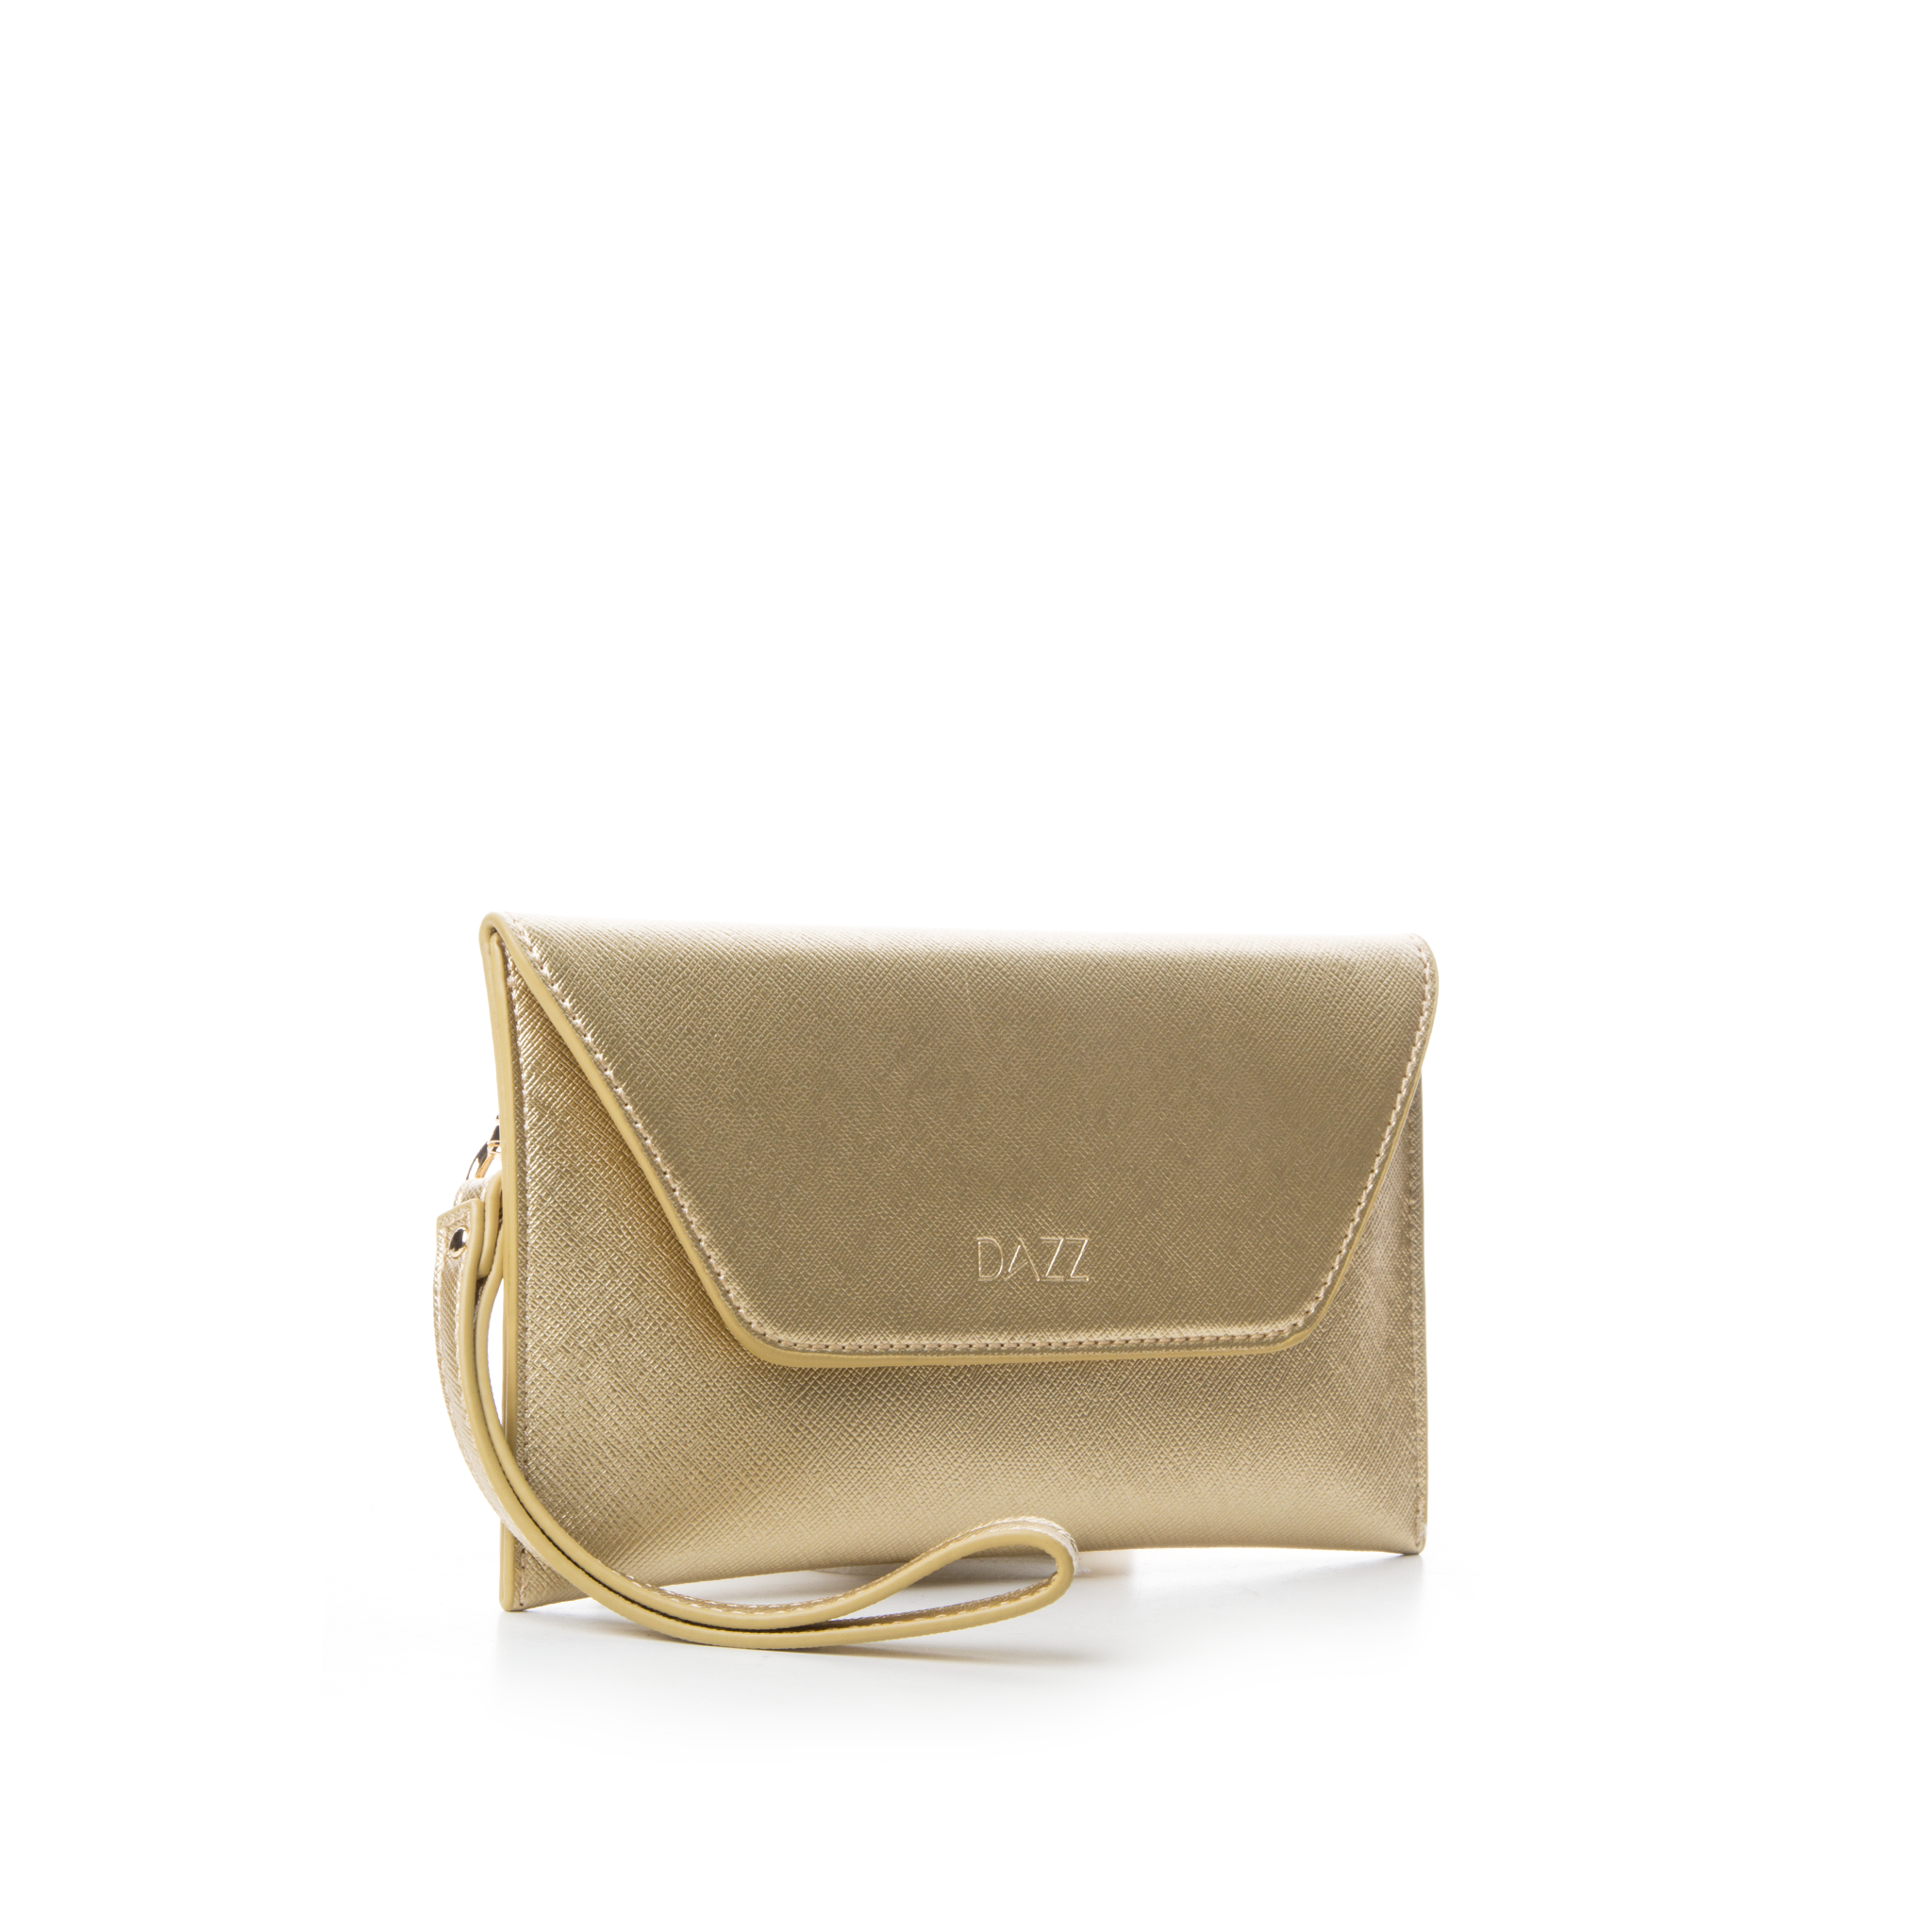 On the Go by Dazz Clutch - Metallic Gold